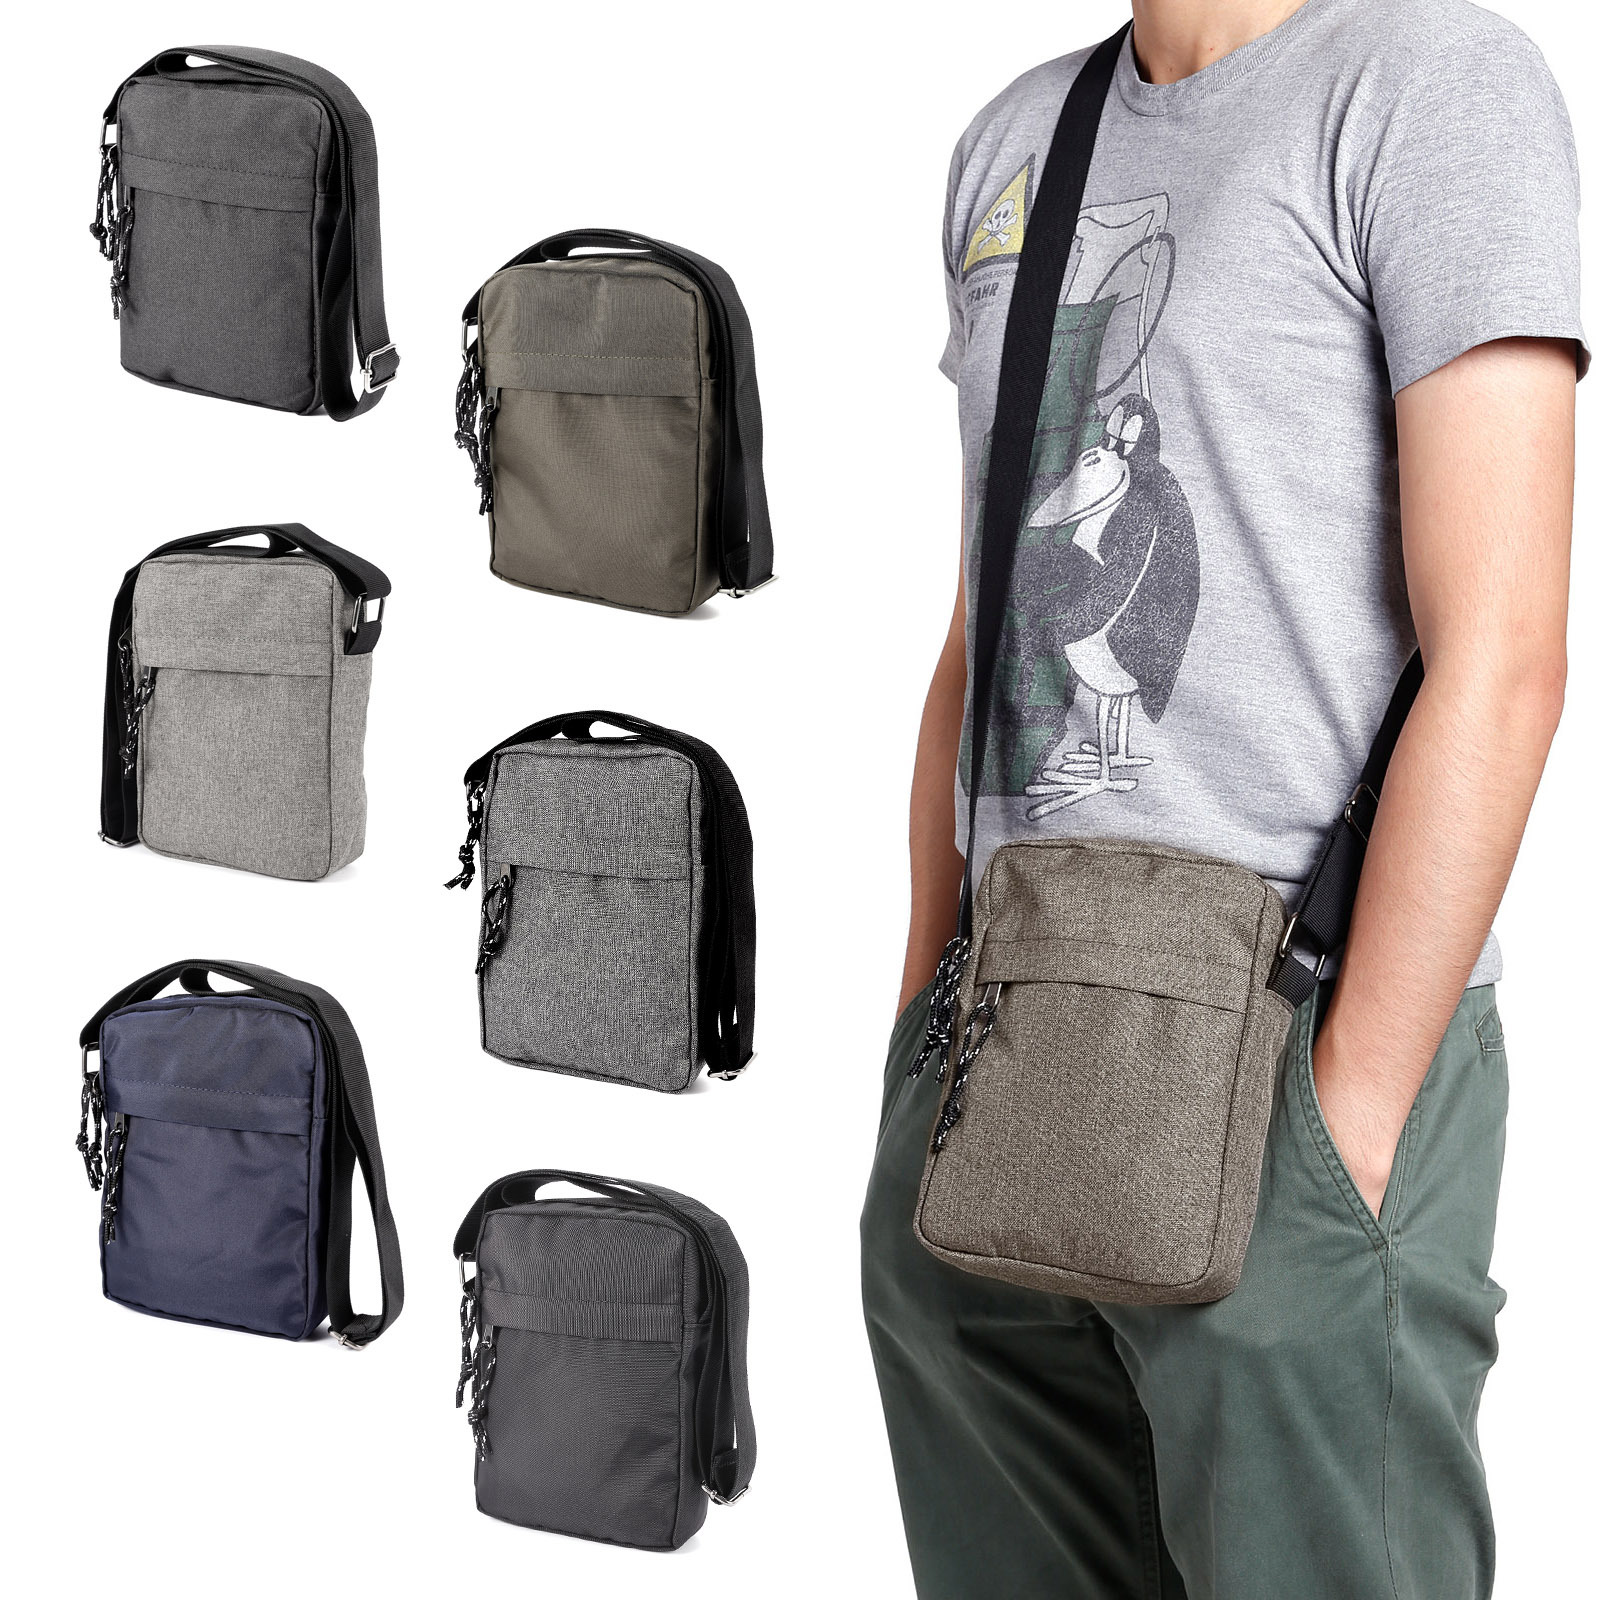 90b43b4db863 Mens Travel Messenger Bag Shoulder Bag Crossbody Handbag Small Bag Briefcase